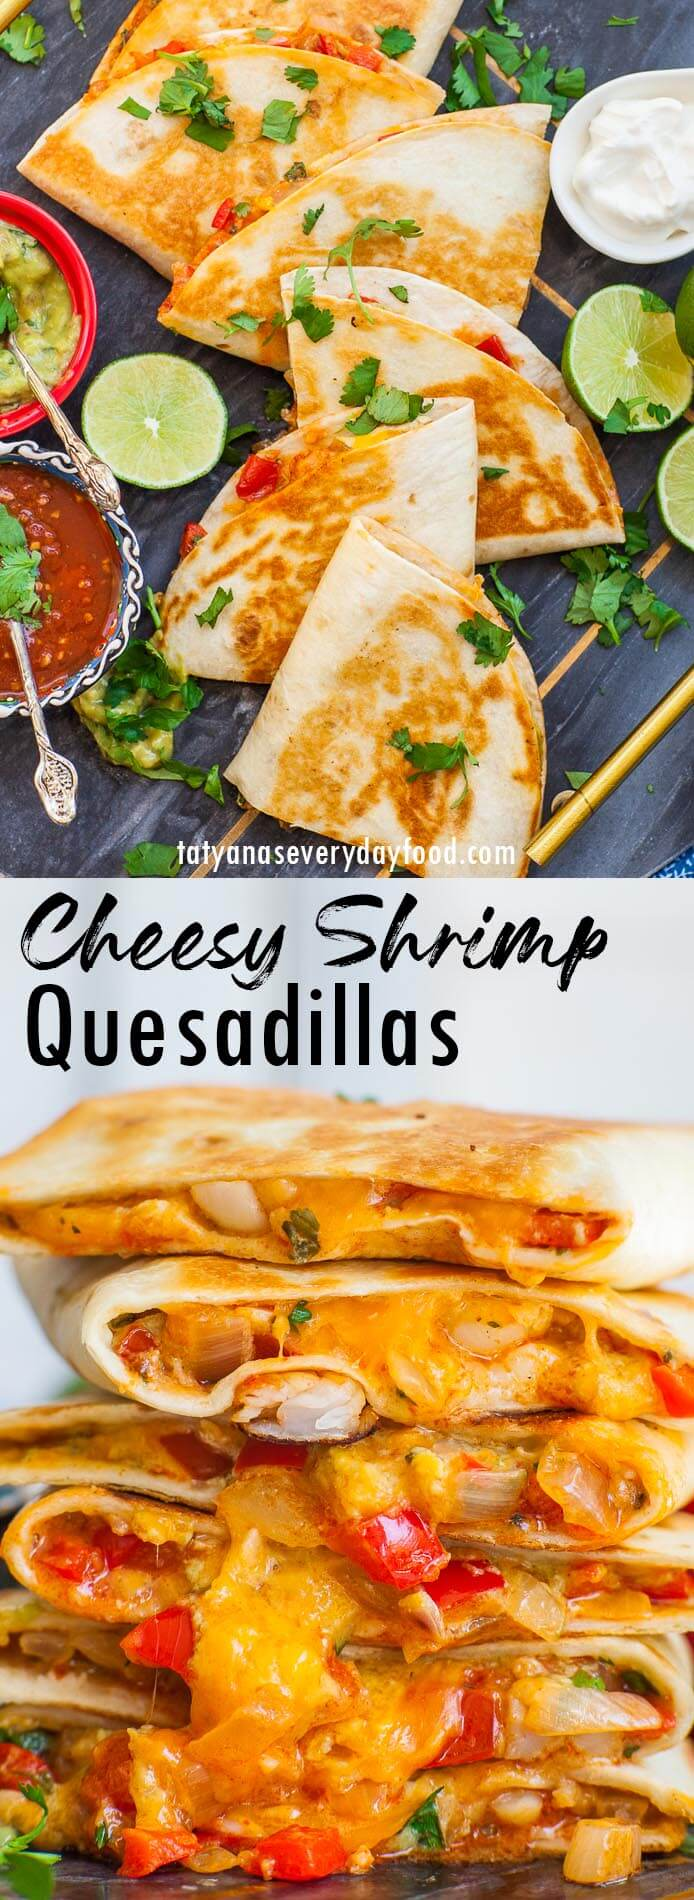 Cheesy Shrimp Quesadillas video recipe board